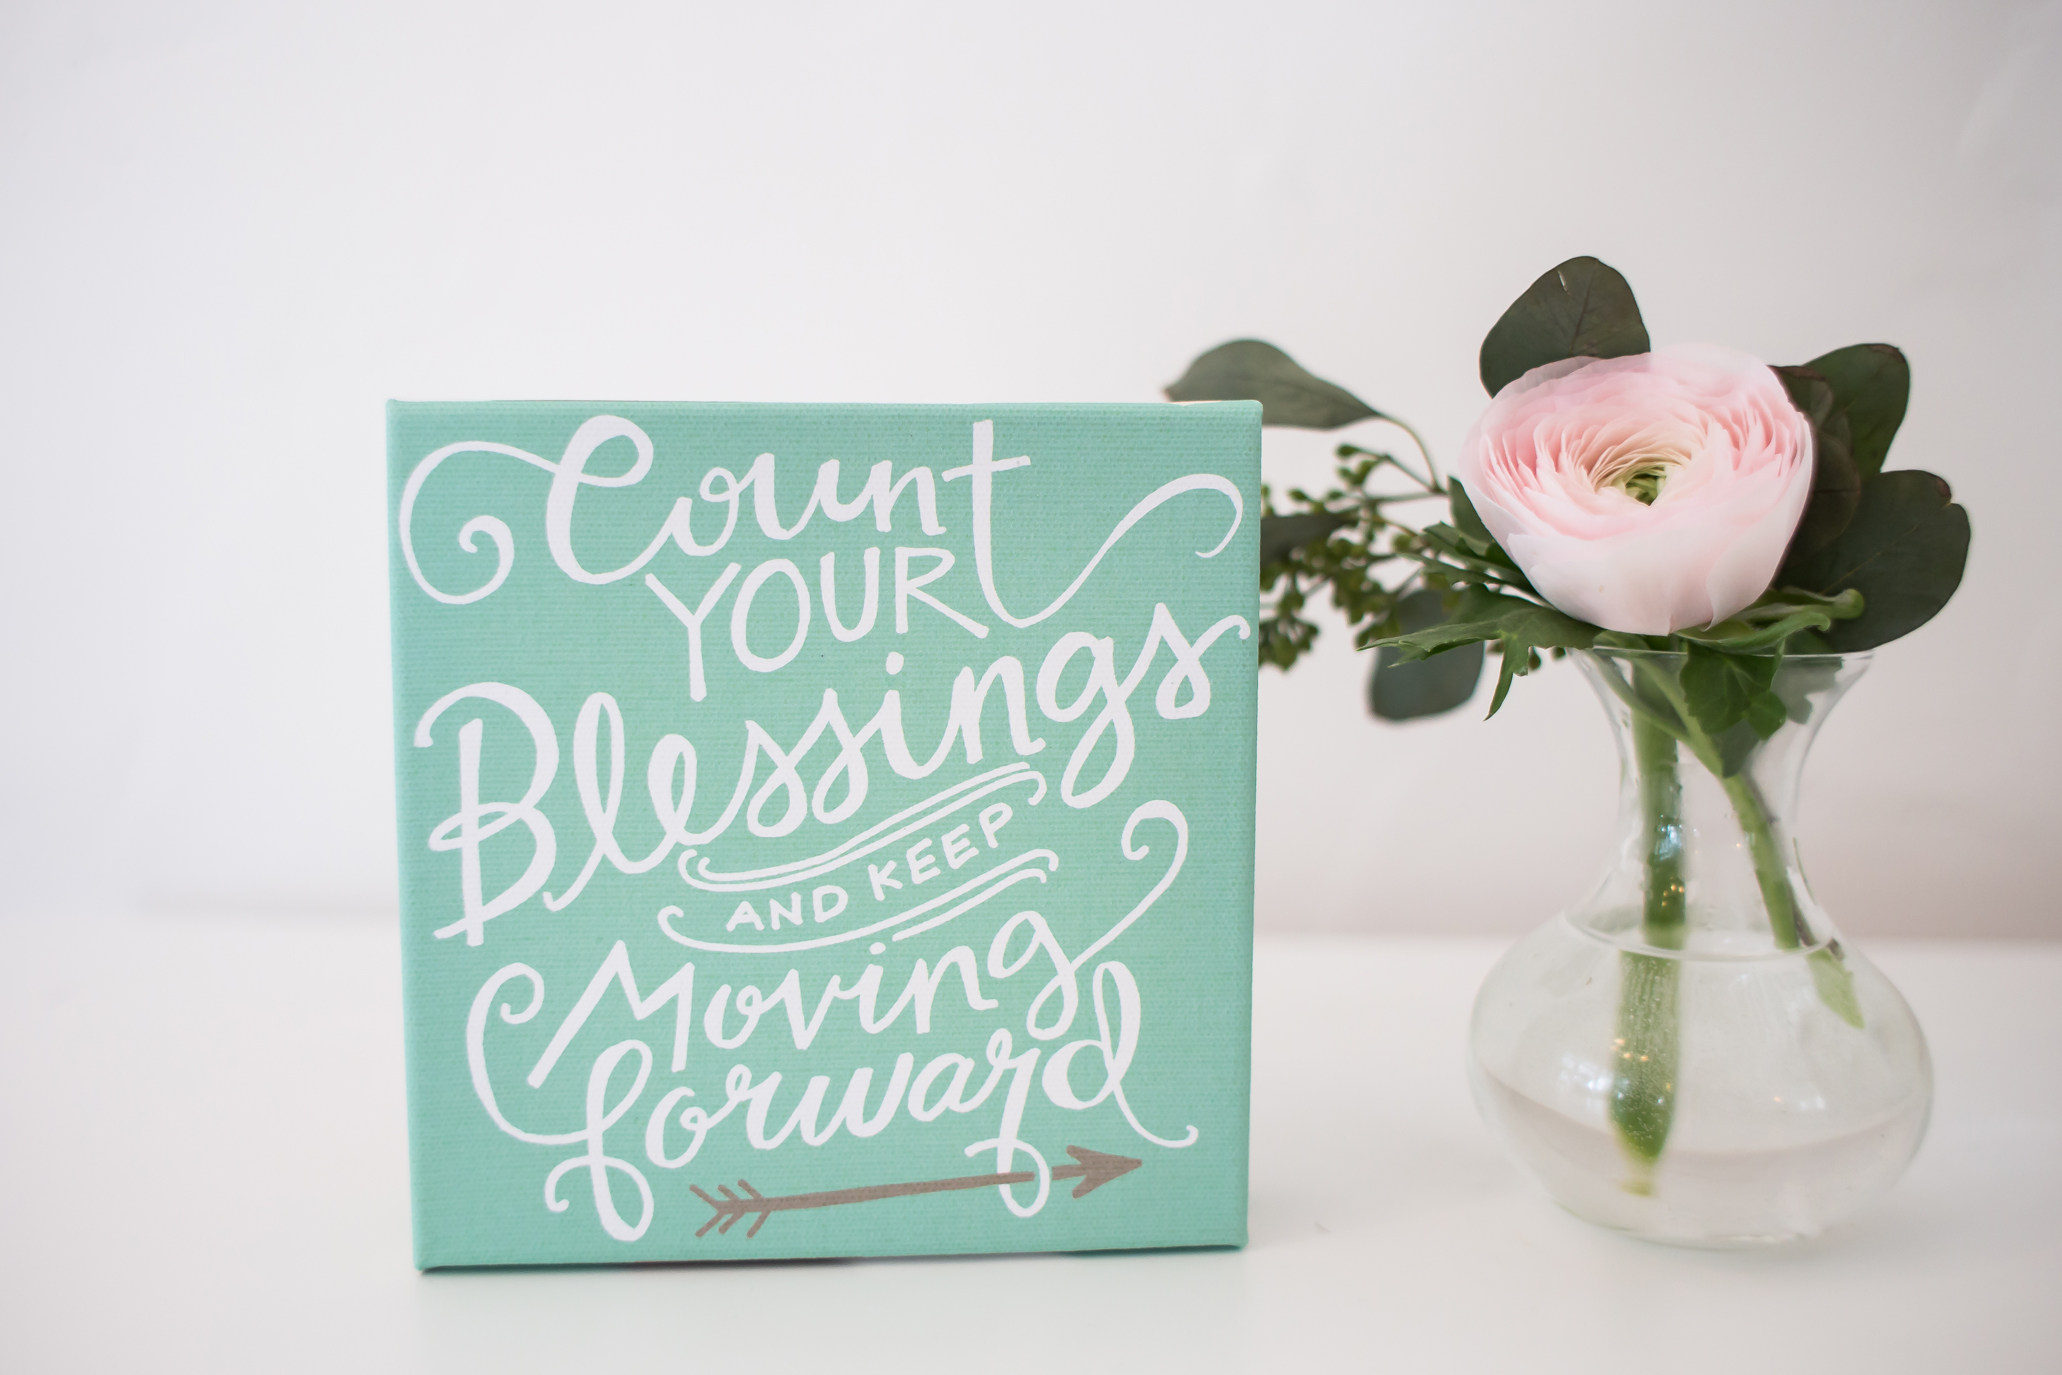 Get our brand new Count Your Blessings canvas for just $9.75 right now!!